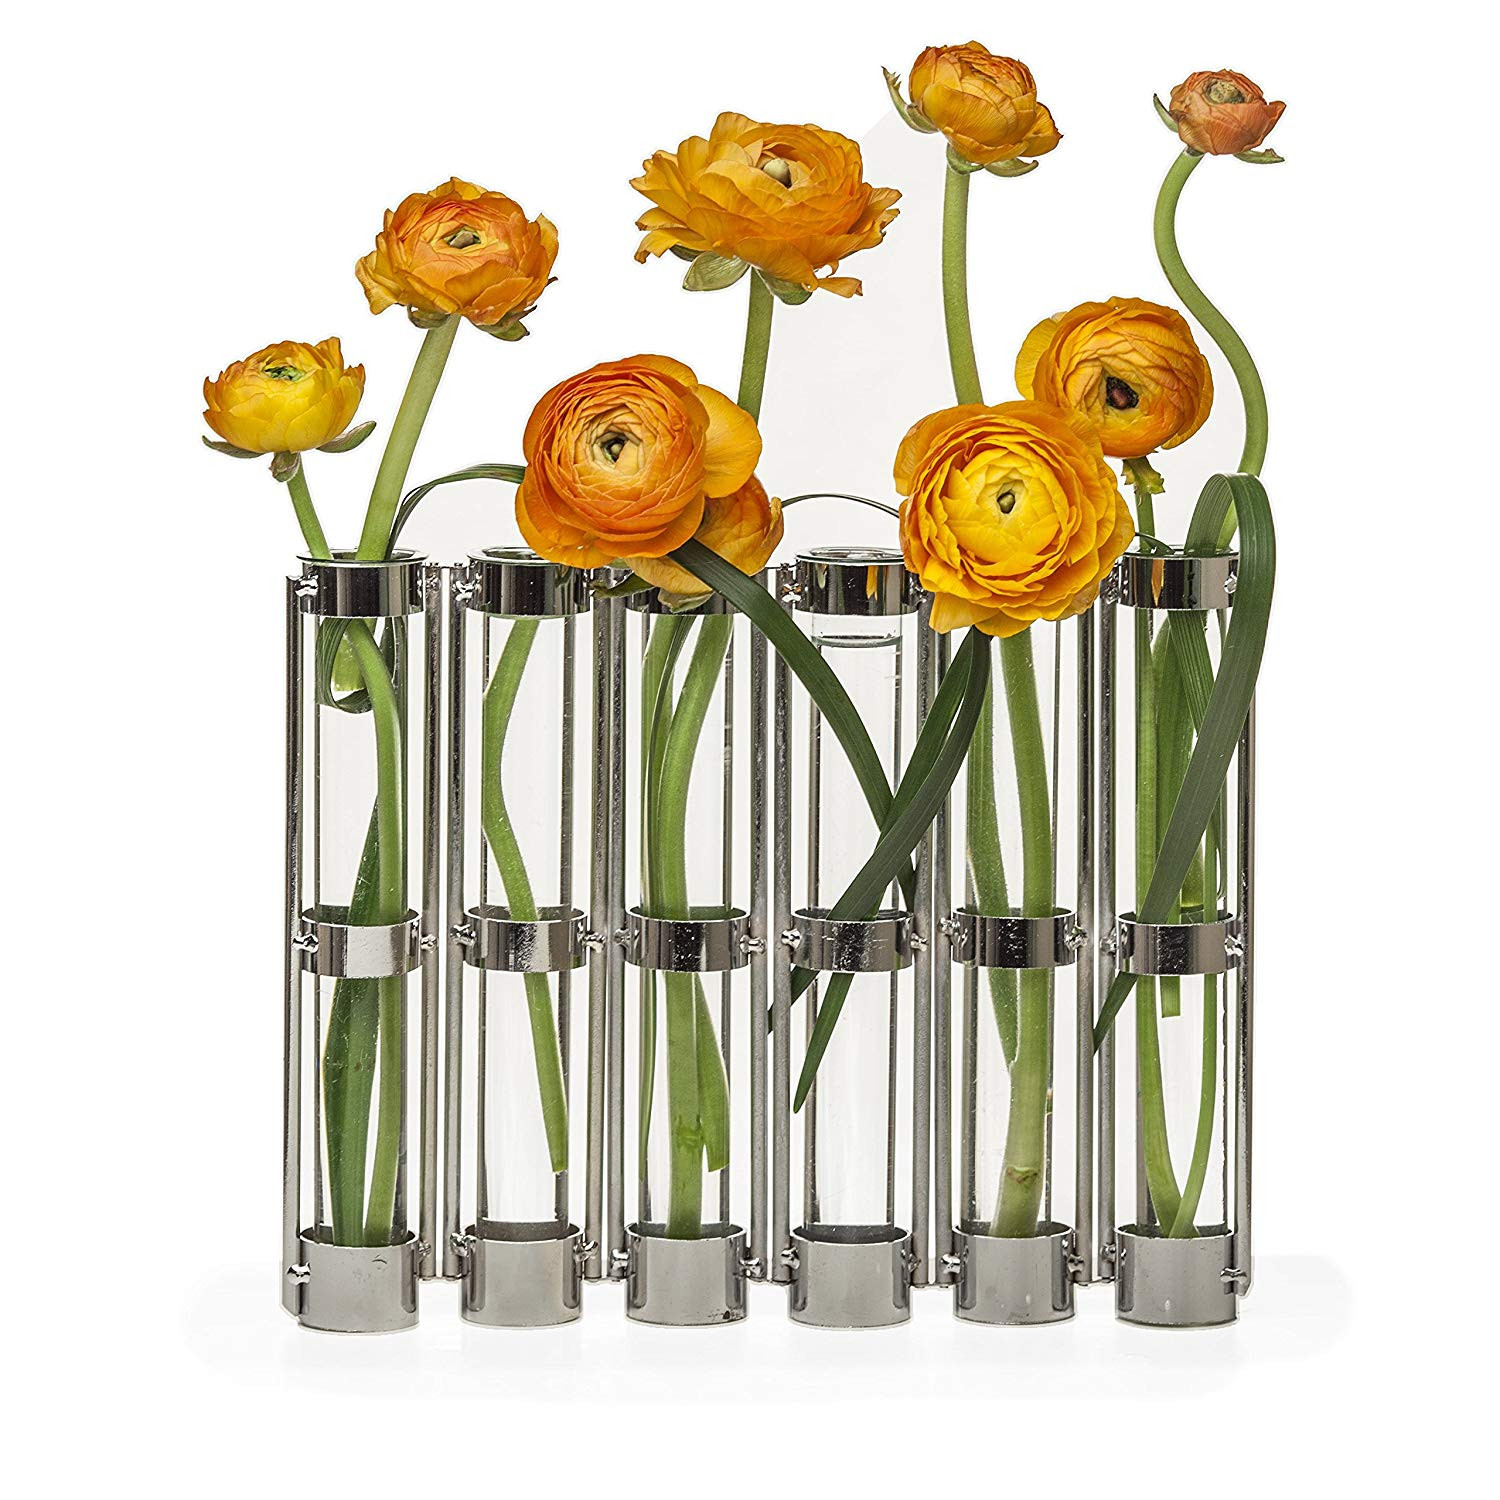 test tube flower vase glass of amazon com danya b metallic six tube hinged bud vase in silver regarding amazon com danya b metallic six tube hinged bud vase in silver finish home kitchen